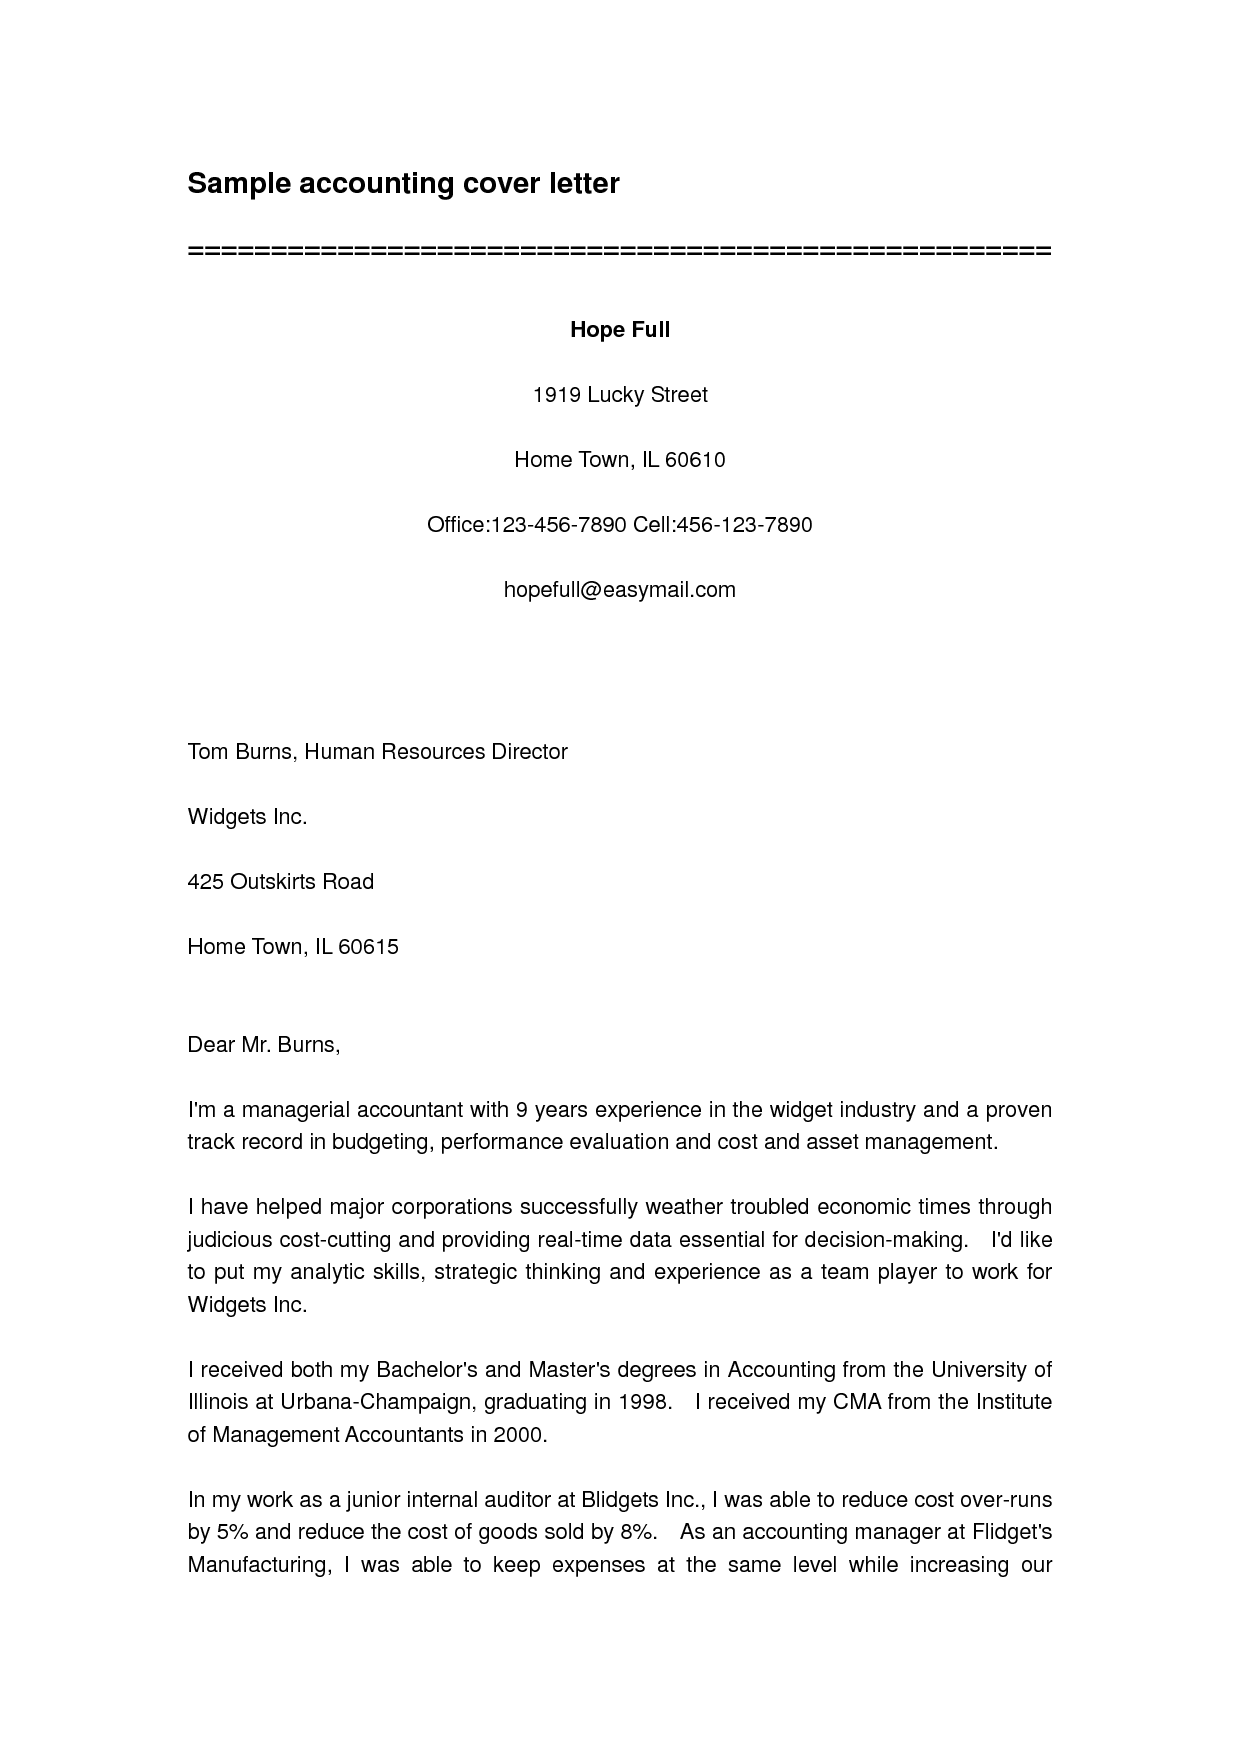 Sample Cover Letter For Bookkeeper - http://www.resumecareer.info ...